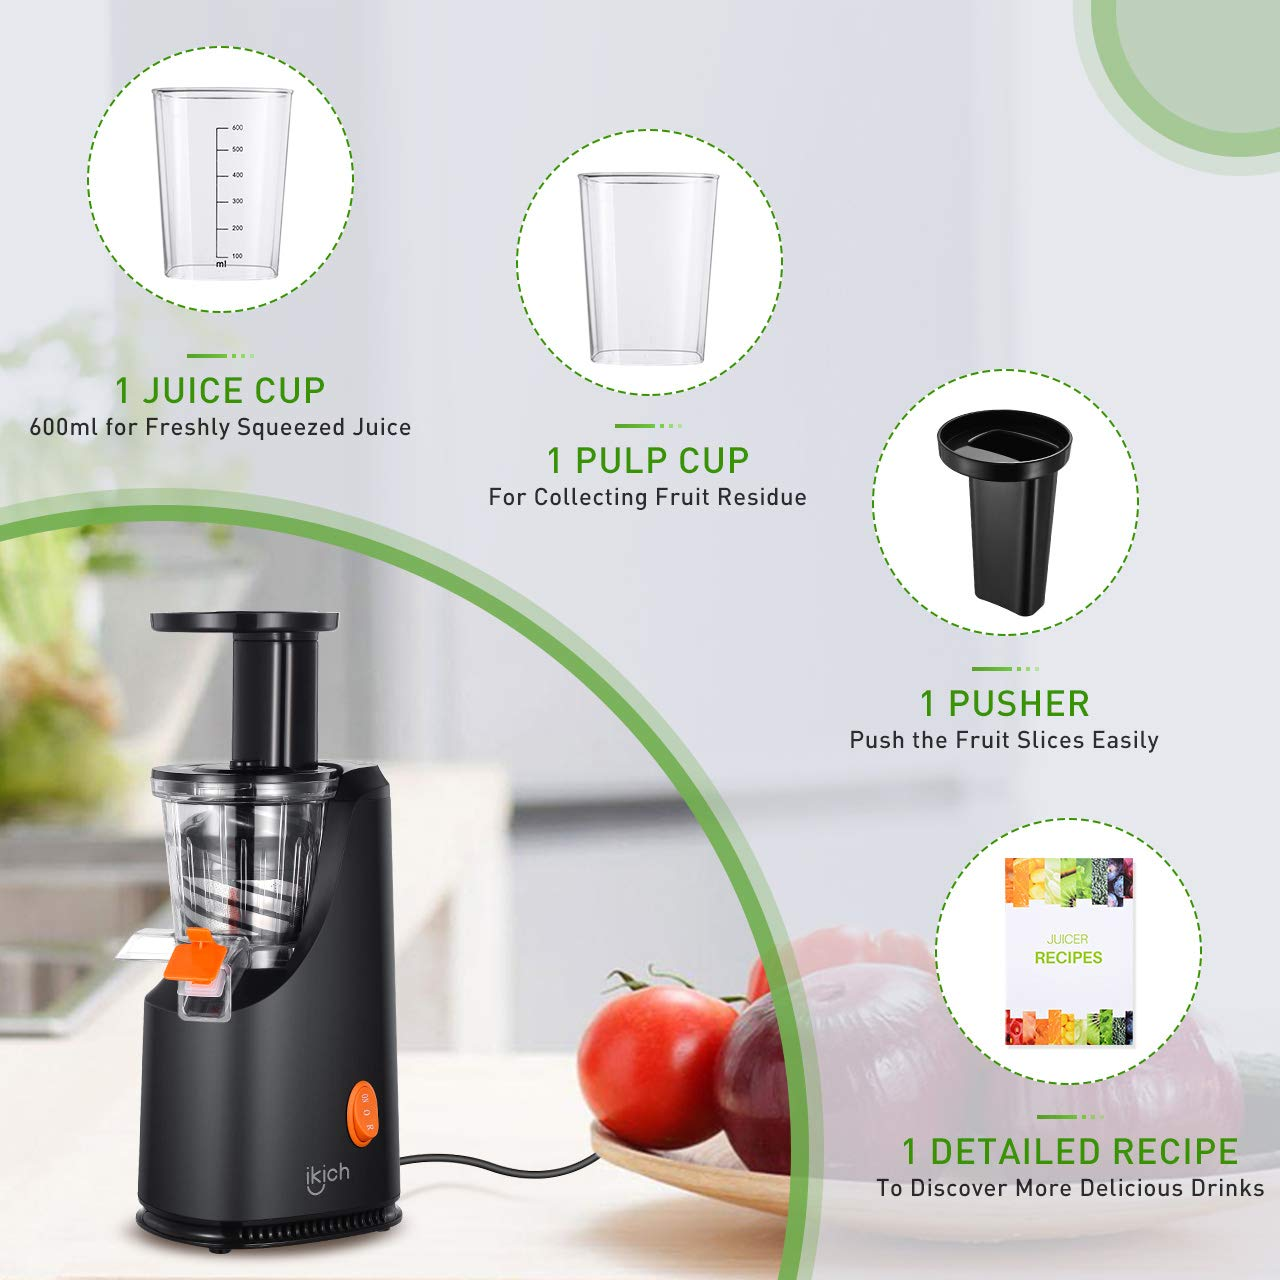 Masticating Juicer IKICH Slow Juicer with 200W Quiet Efficient Motor Compact Design Juicer Machines Easy to Clean with Juice Recipes , Brush , Cold Press Juicer with BPA-Free, FDA Approved by IKICH (Image #7)